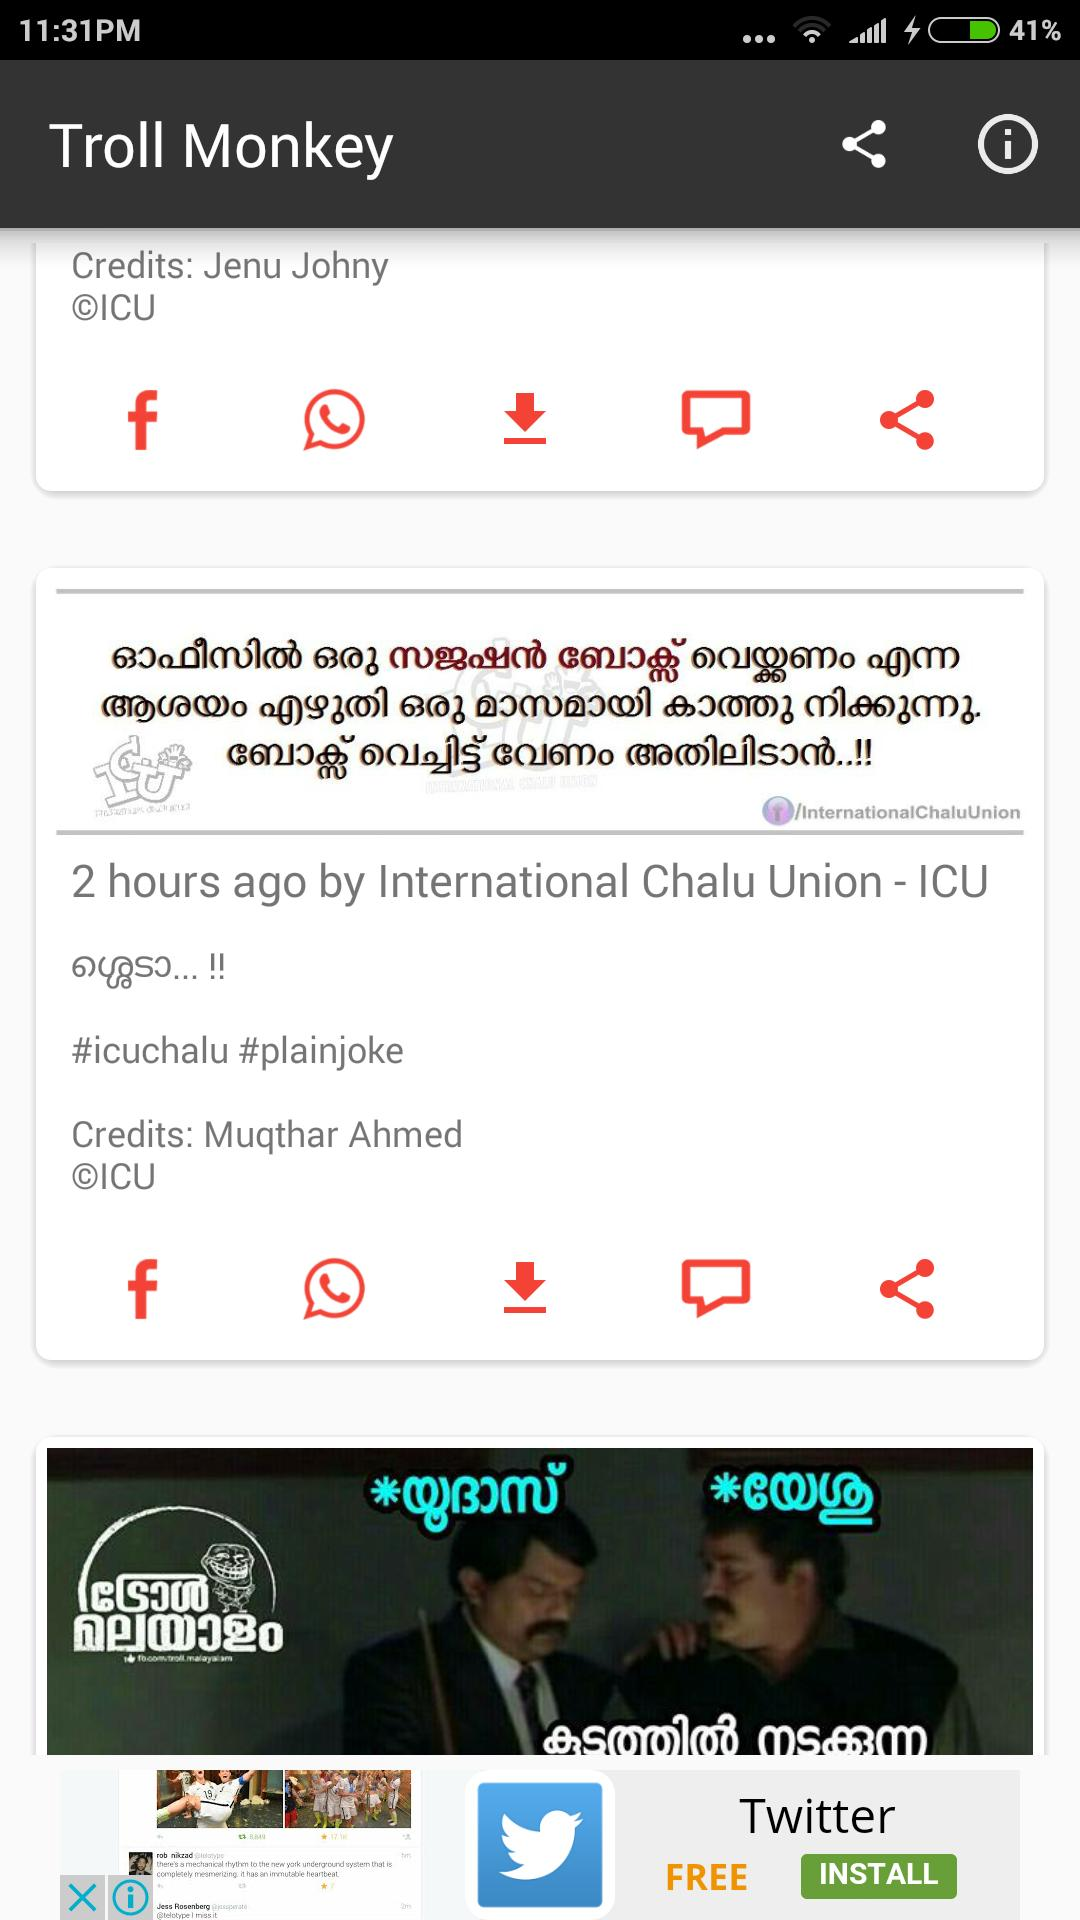 Malayalam Trolls Daily Updated - Troll monkey for Android - APK Download